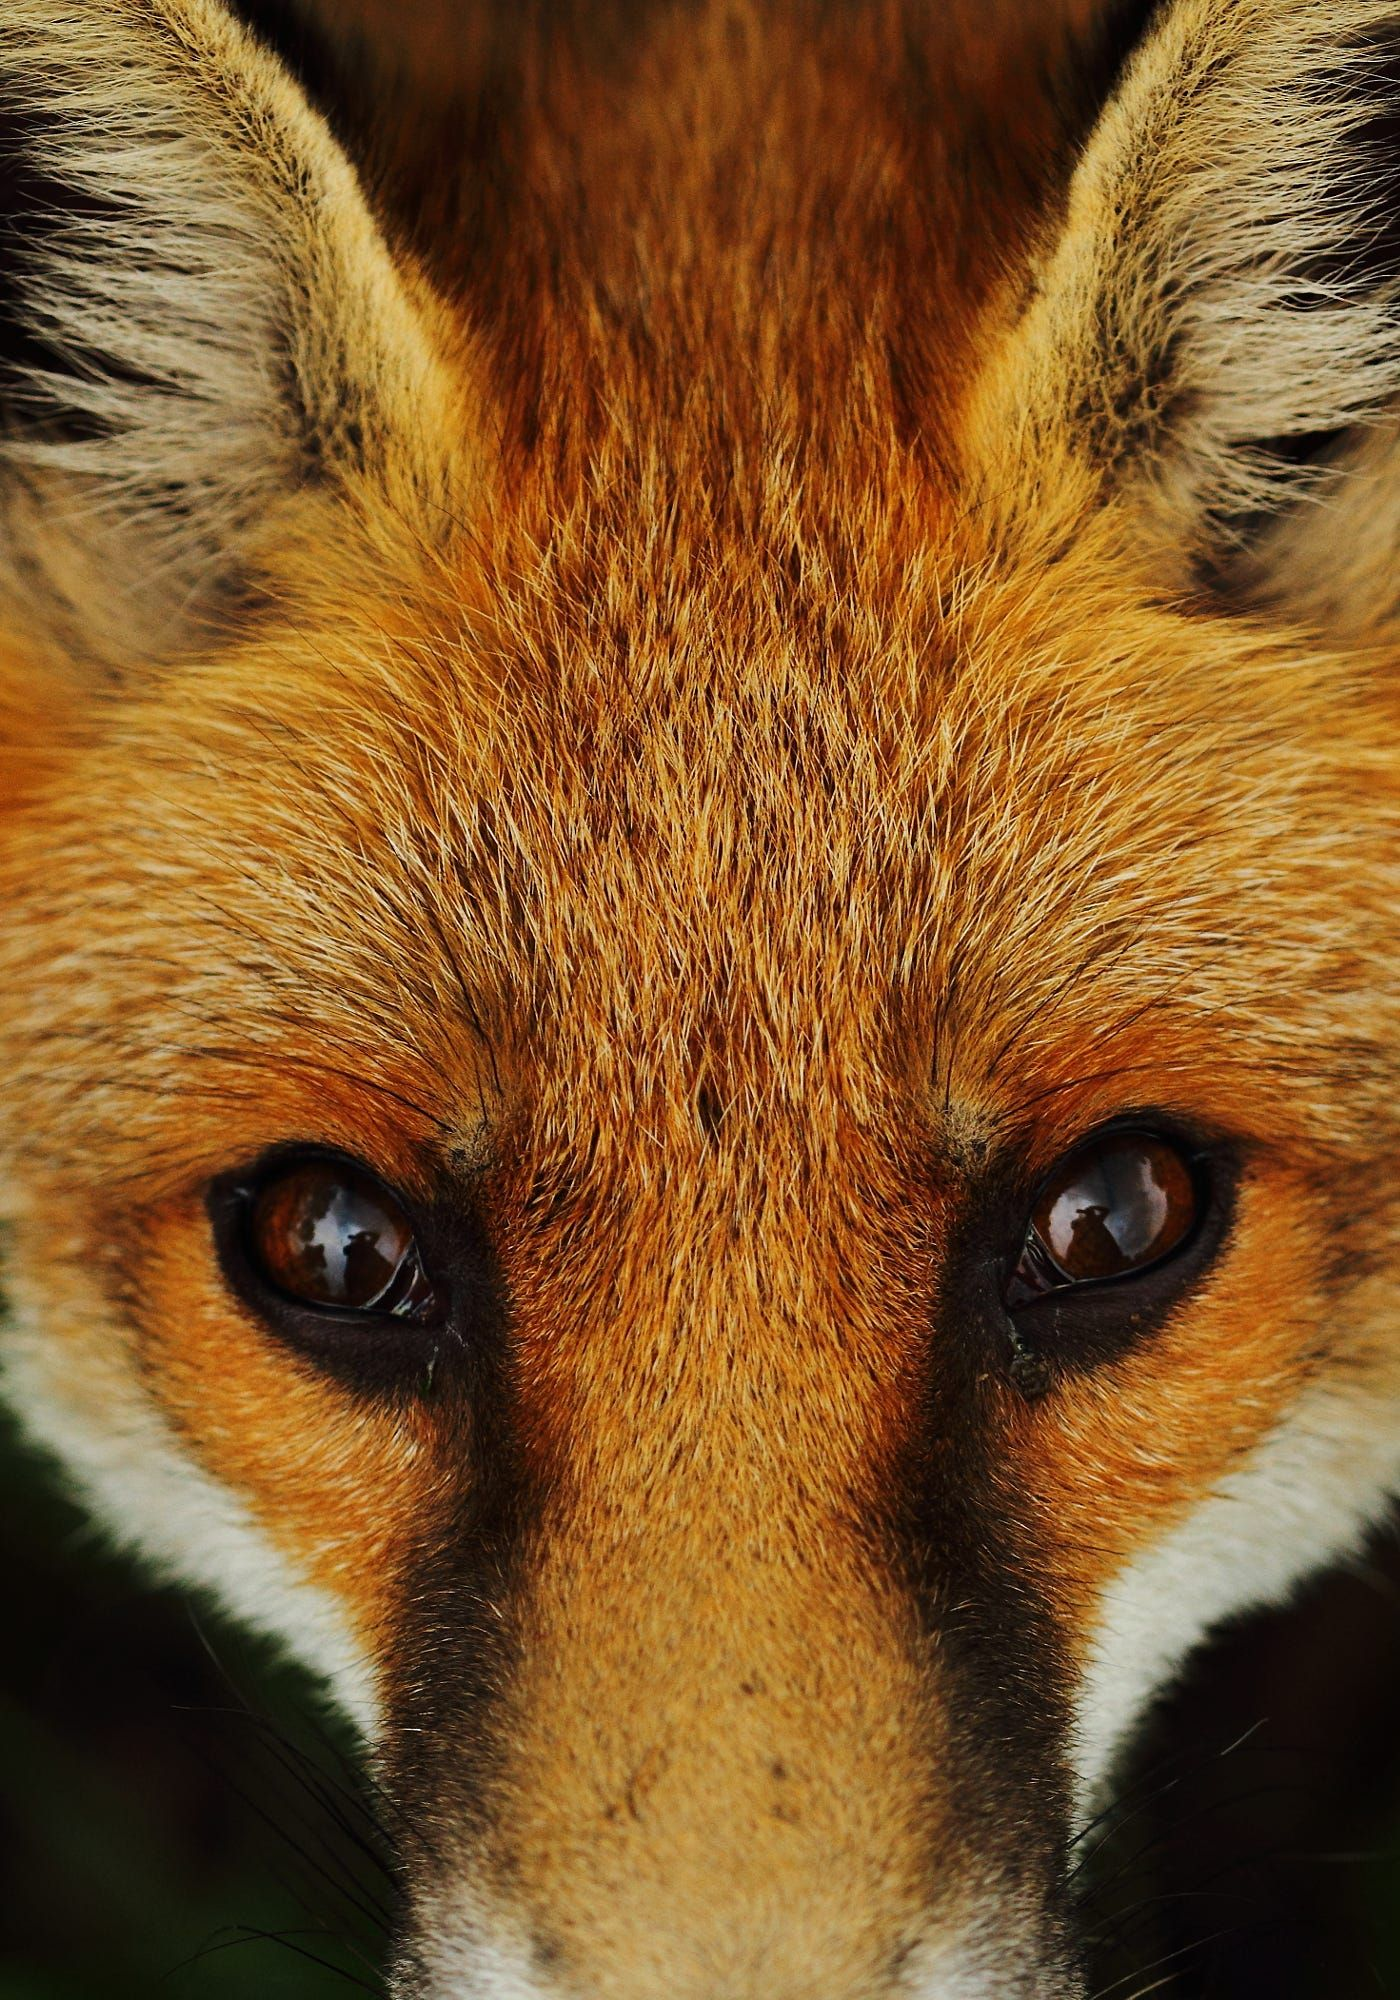 Close up of a fox face (With images) | Animal close up ...